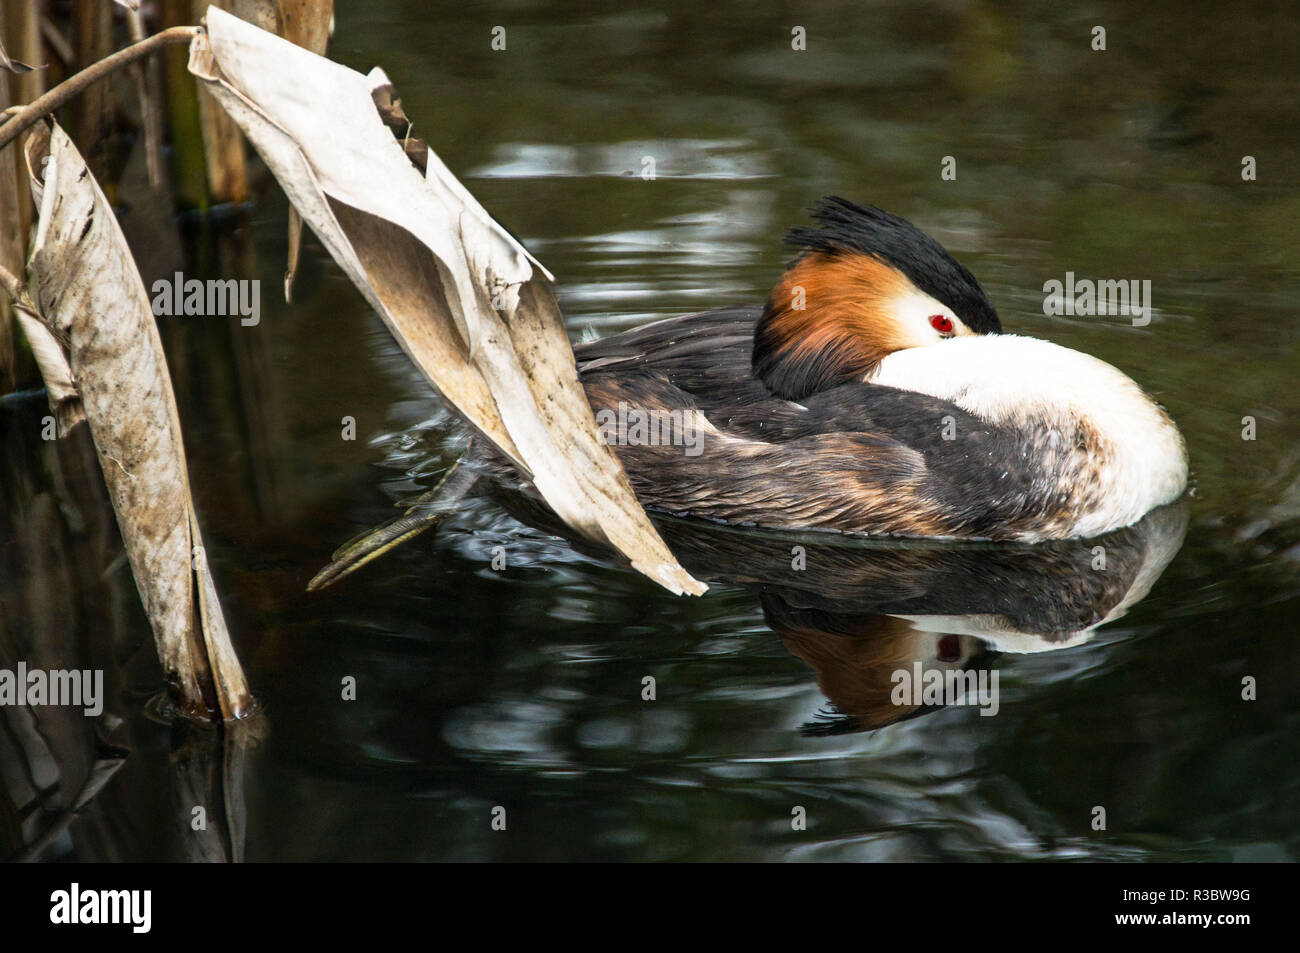 Great Crested Grebe (Podiceps cristatus) in summer plumage. - Stock Image